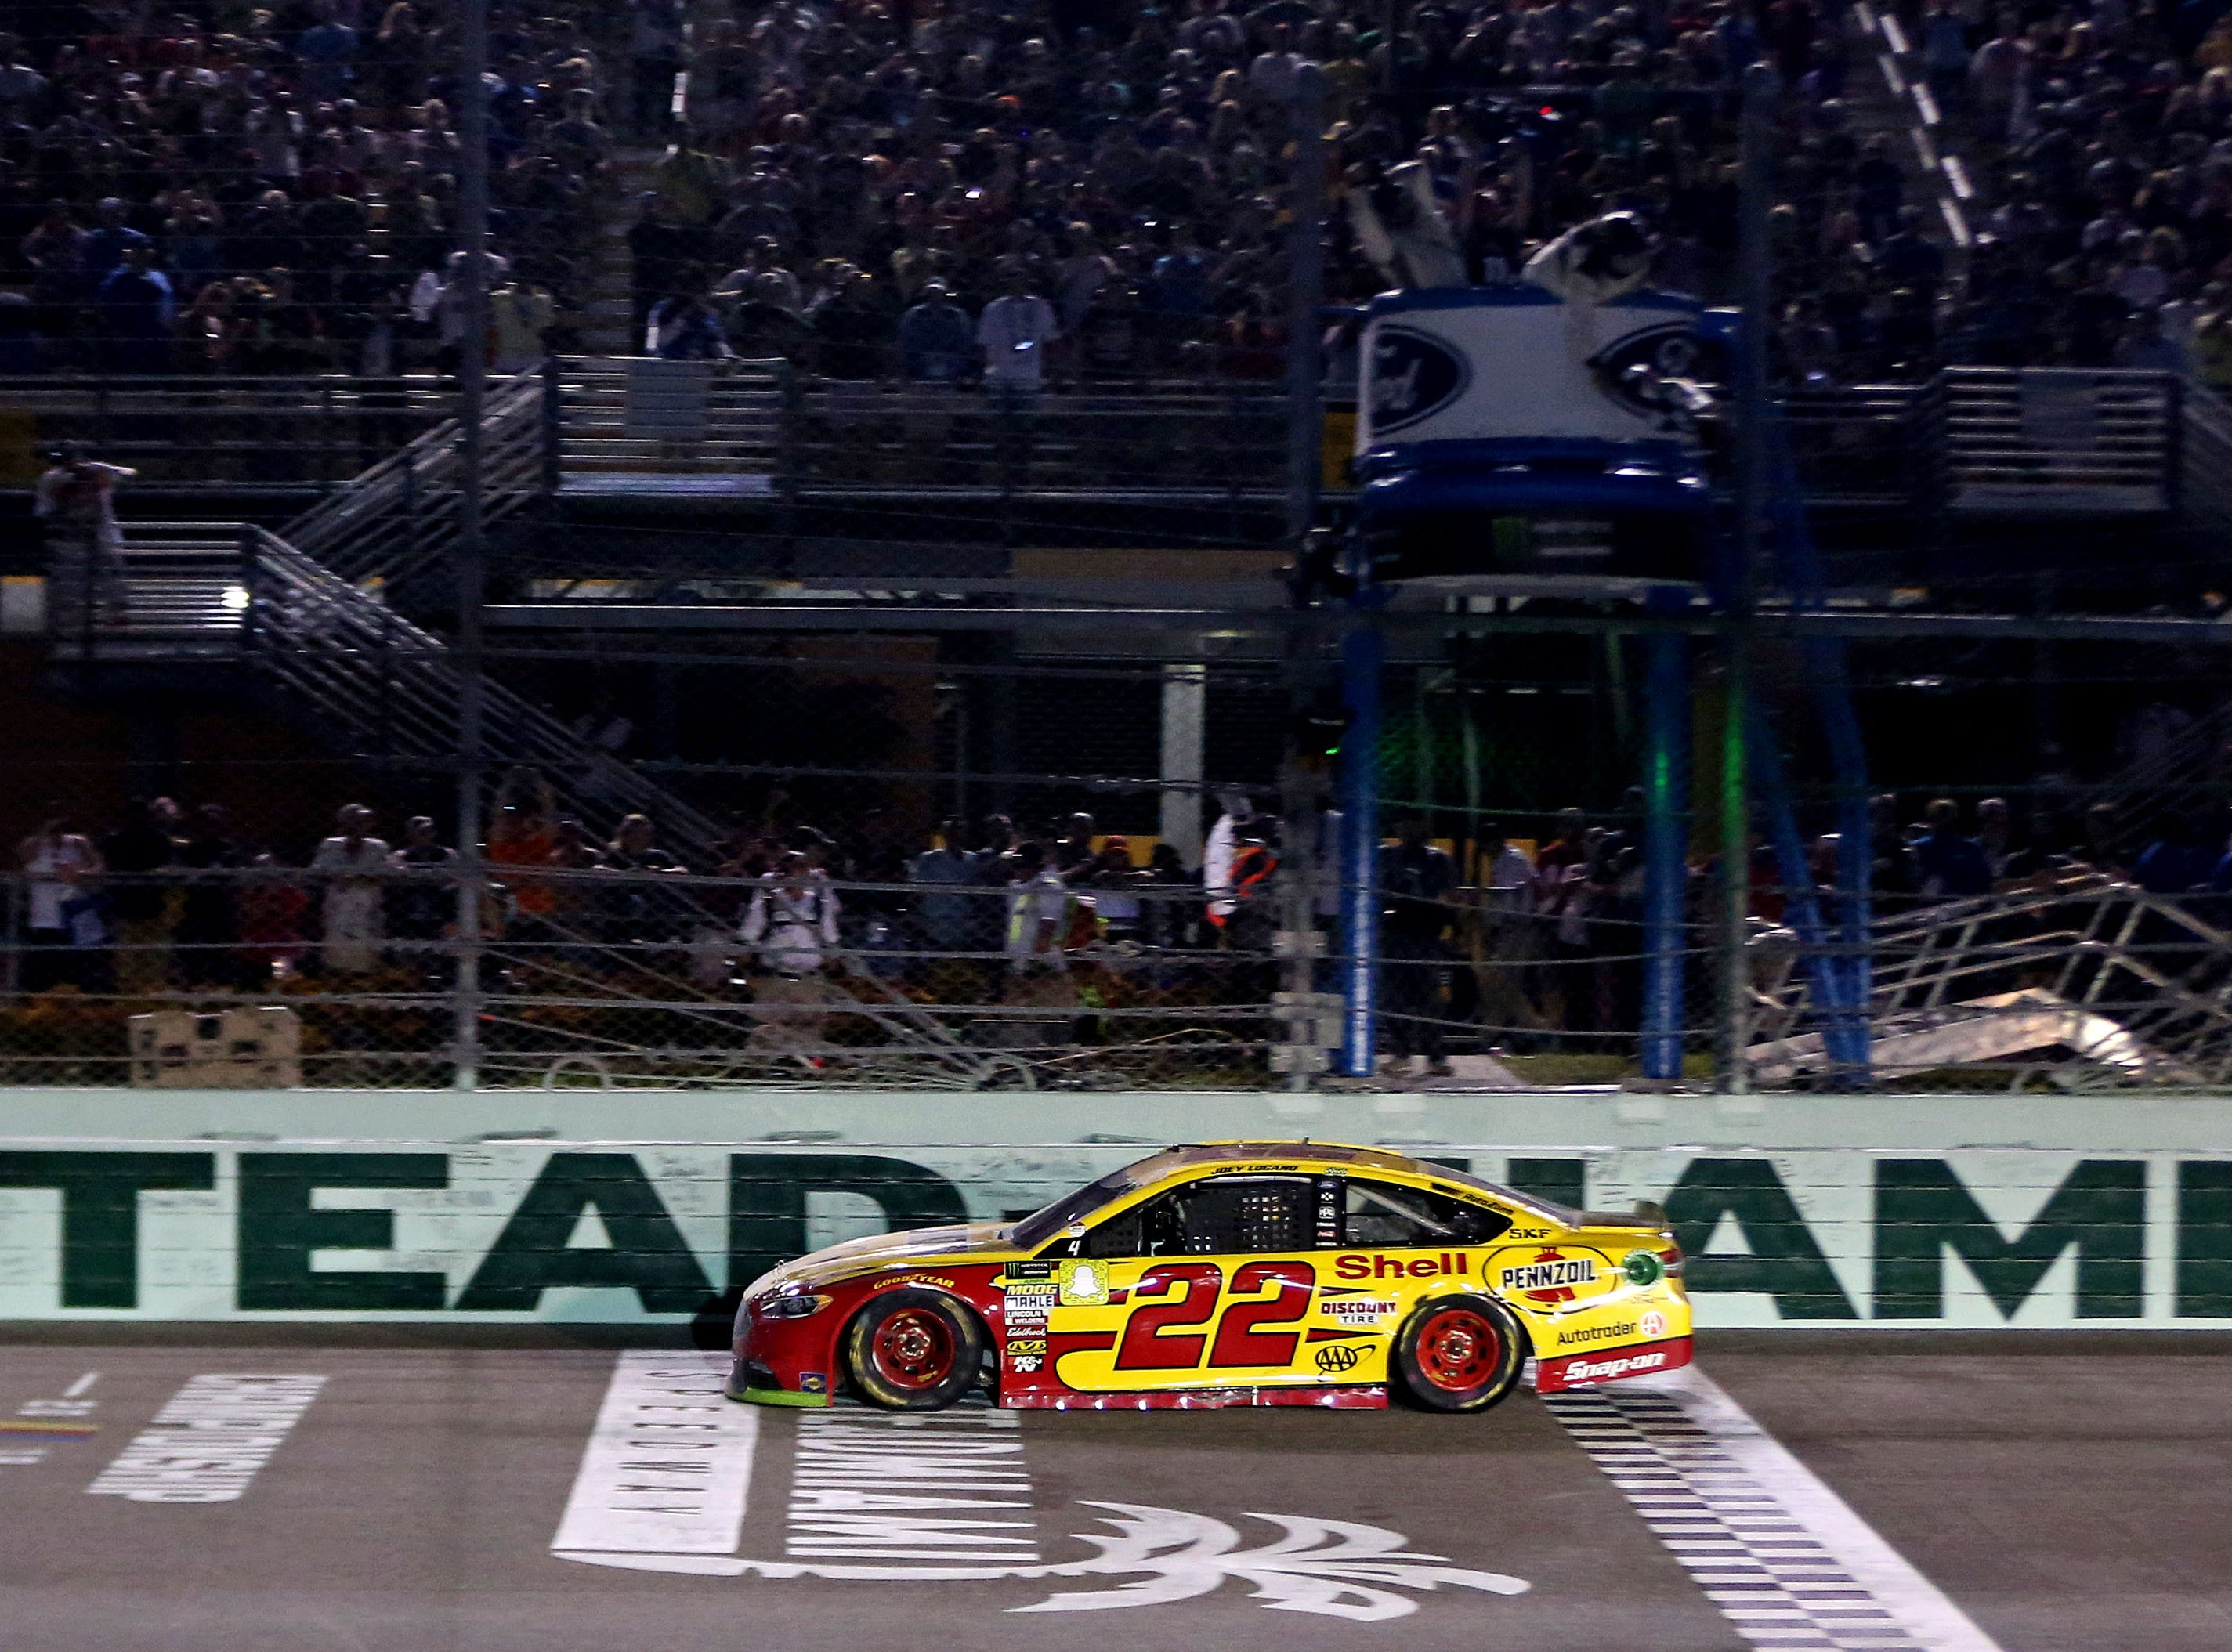 Joey Logano (22) crosses the finish line to win the Ford EcoBoost 400 and the NASCAR Cup Series Championship at Homestead-Miami Speedway.